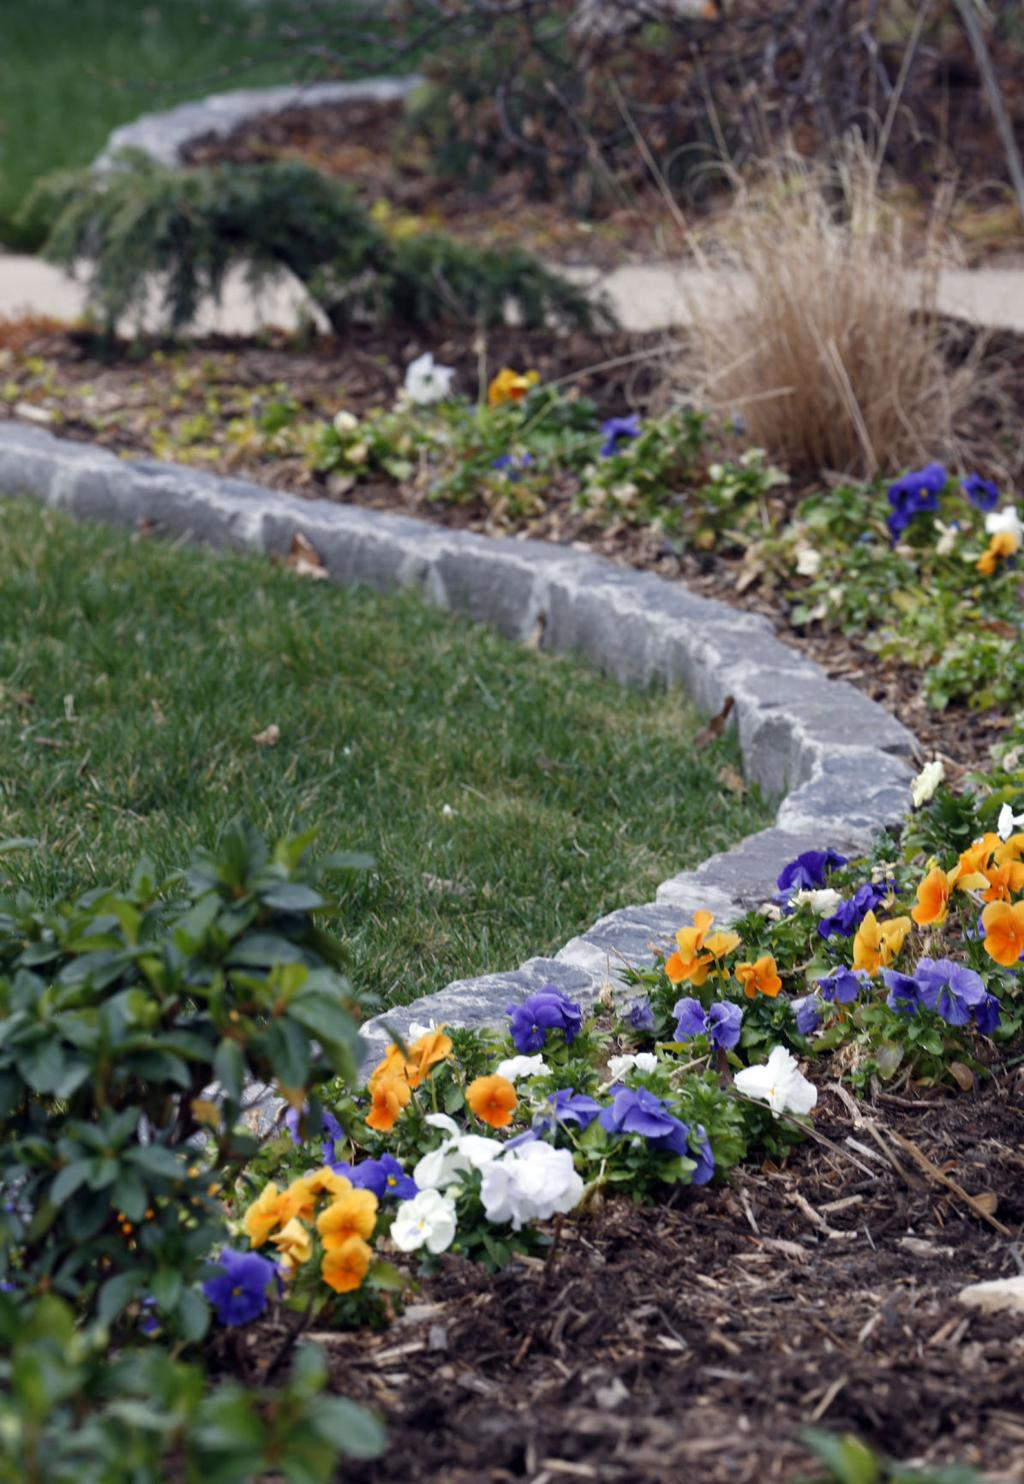 Low Cost Landscaping Can Boost Home Values Archive Tulsaworld Com